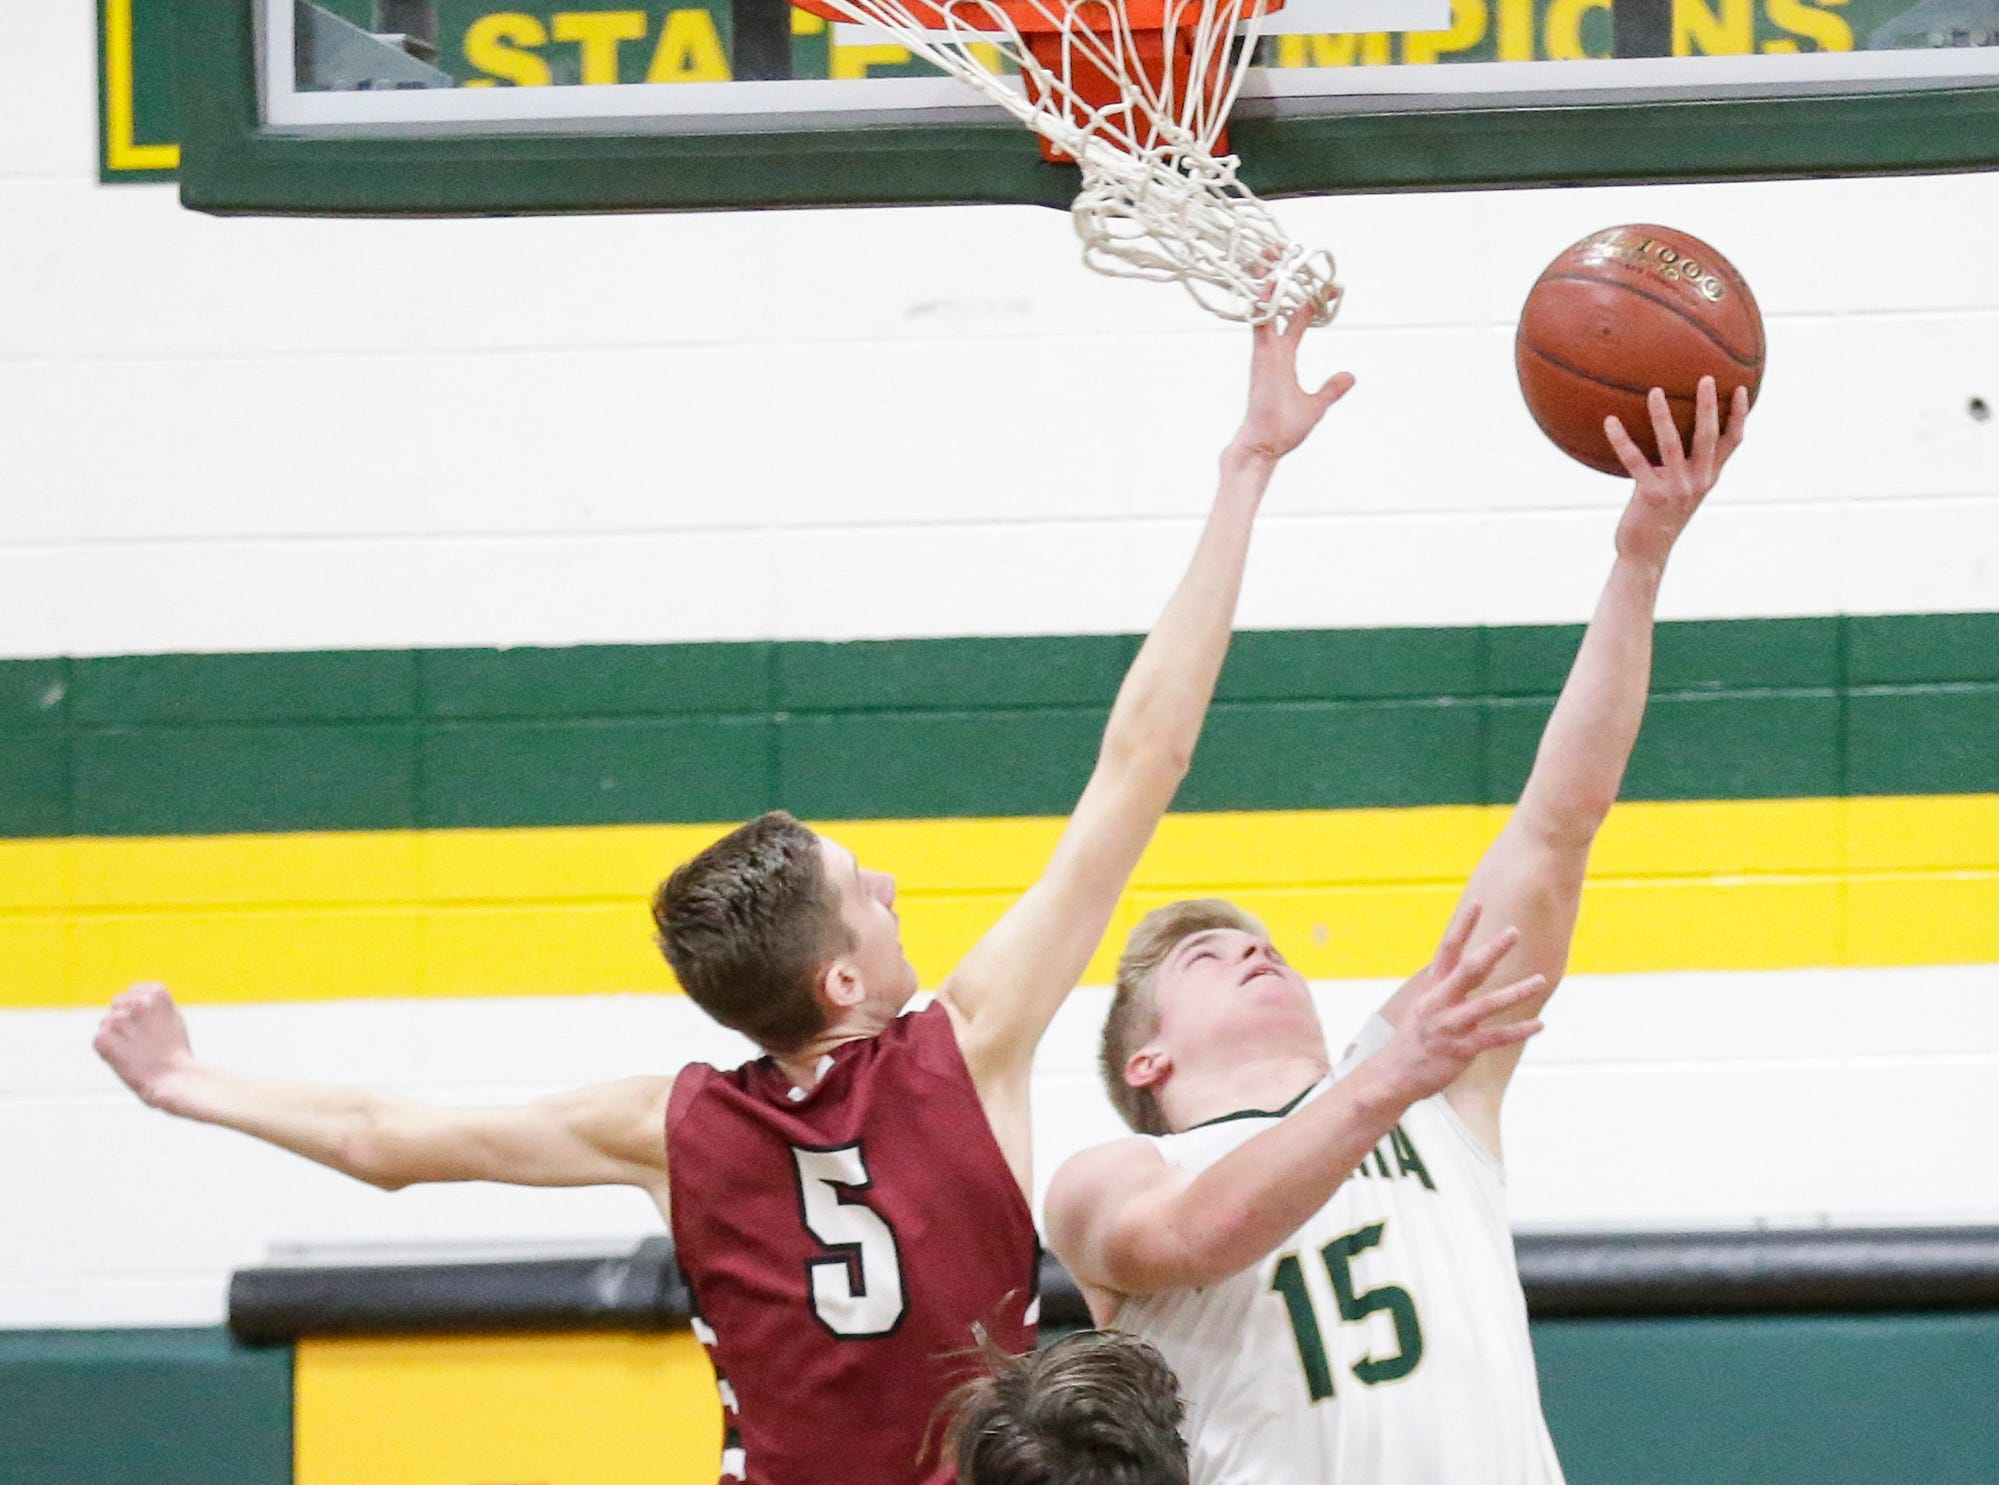 Laconia High School boys basketball's Isaac Leonard makes this basket while Mayville High School's Isaac Wolf defends him during their game Friday, January 25, 2019 in Rosendale. Laconia won the game 80-54. Doug Raflik/USA TODAY NETWORK-Wisconsin